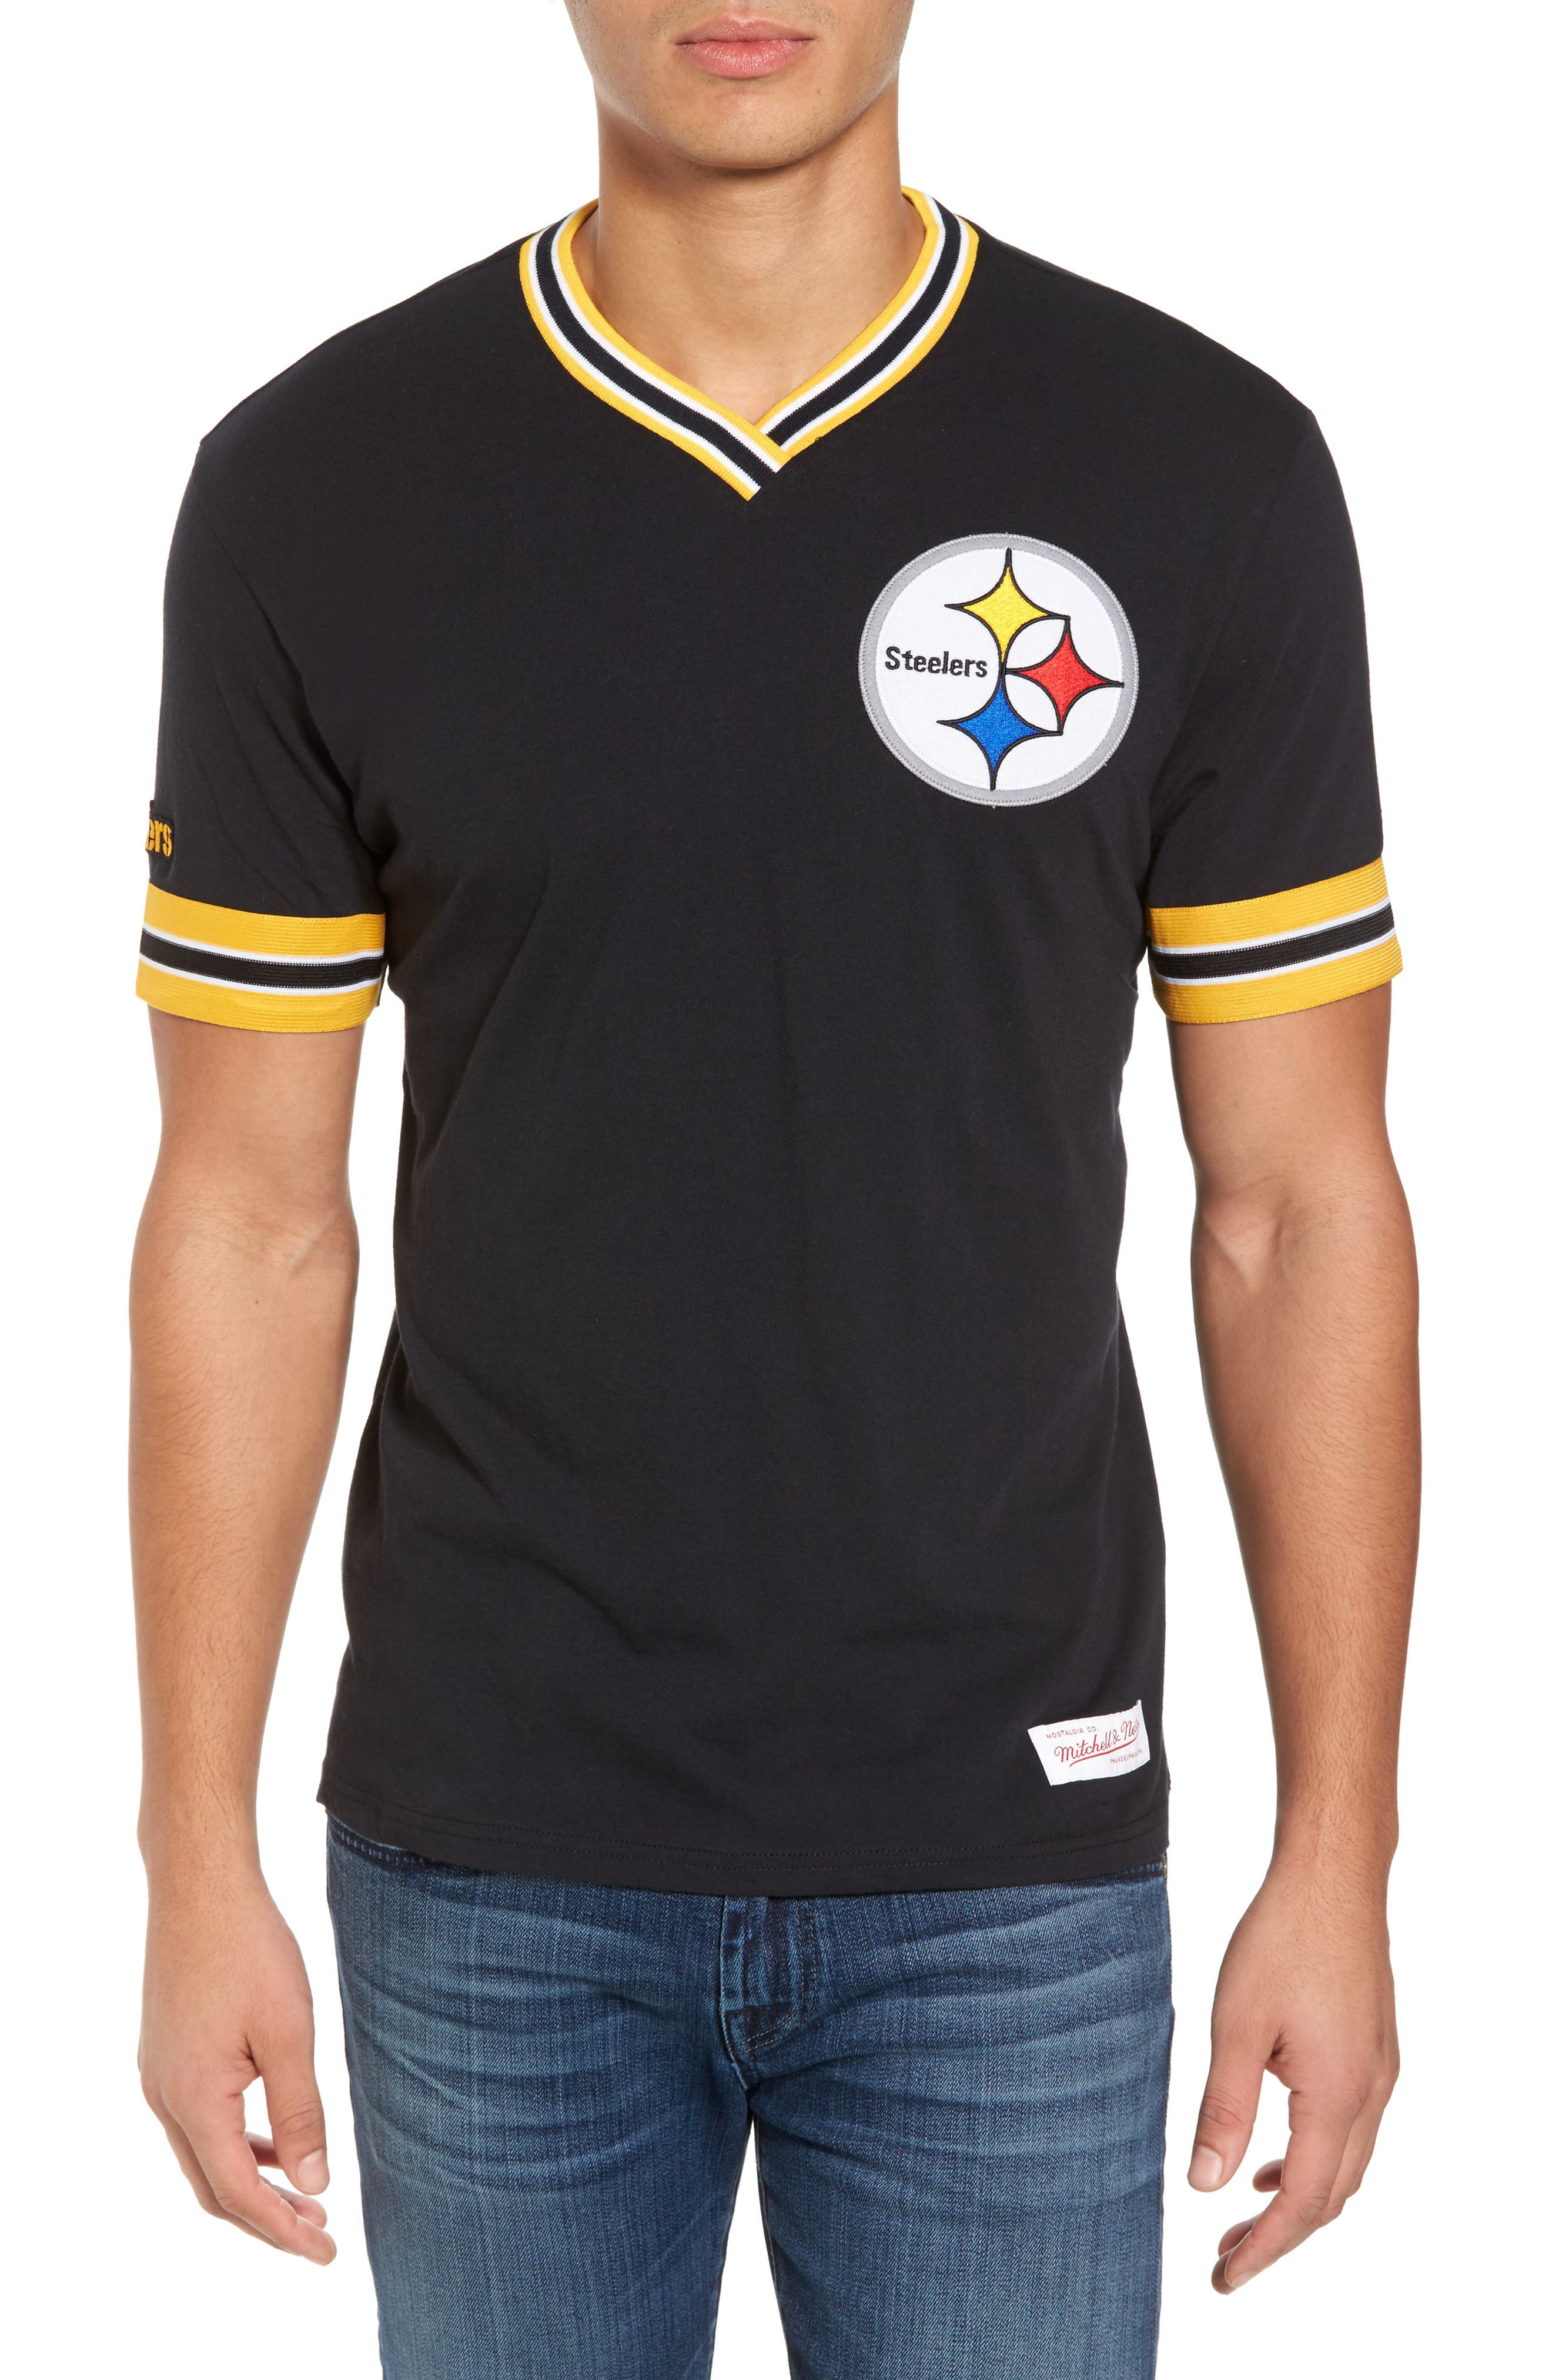 Mitchell & Ness NFL Steelers T-Shirt